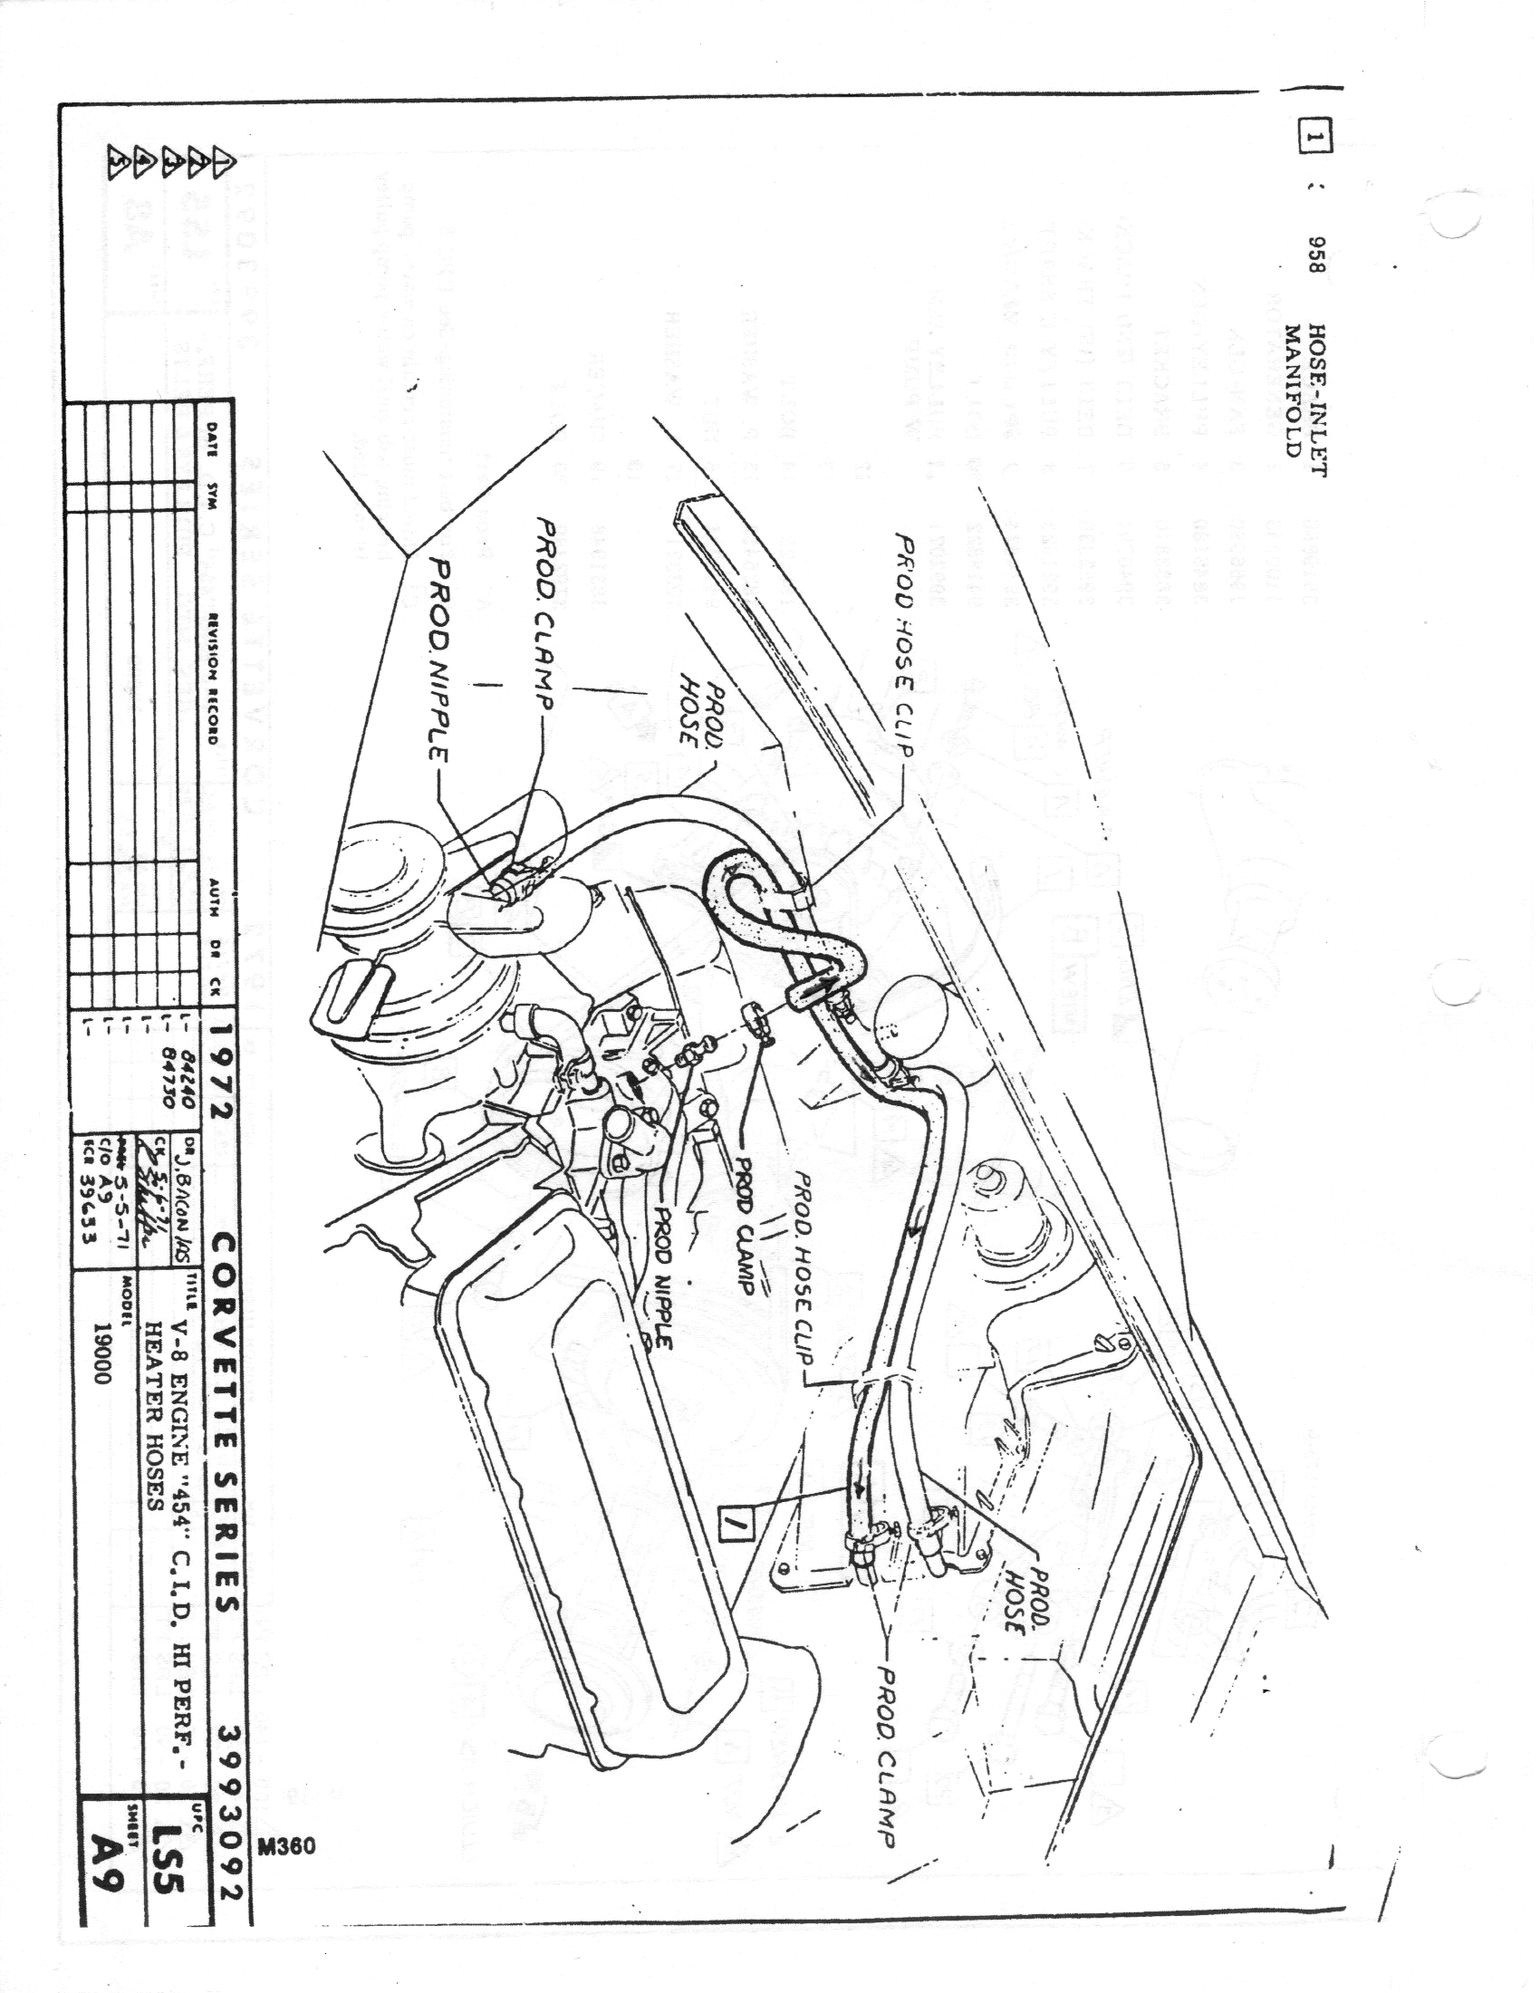 RepairGuideContent further 94 Buick Century Heater Wiring Diagram together with Wiring Harness For 1979 Jeep Cj7 further 57 Corvette Wiring Diagram likewise 901 Jubilee 4. on 69 corvette radiator